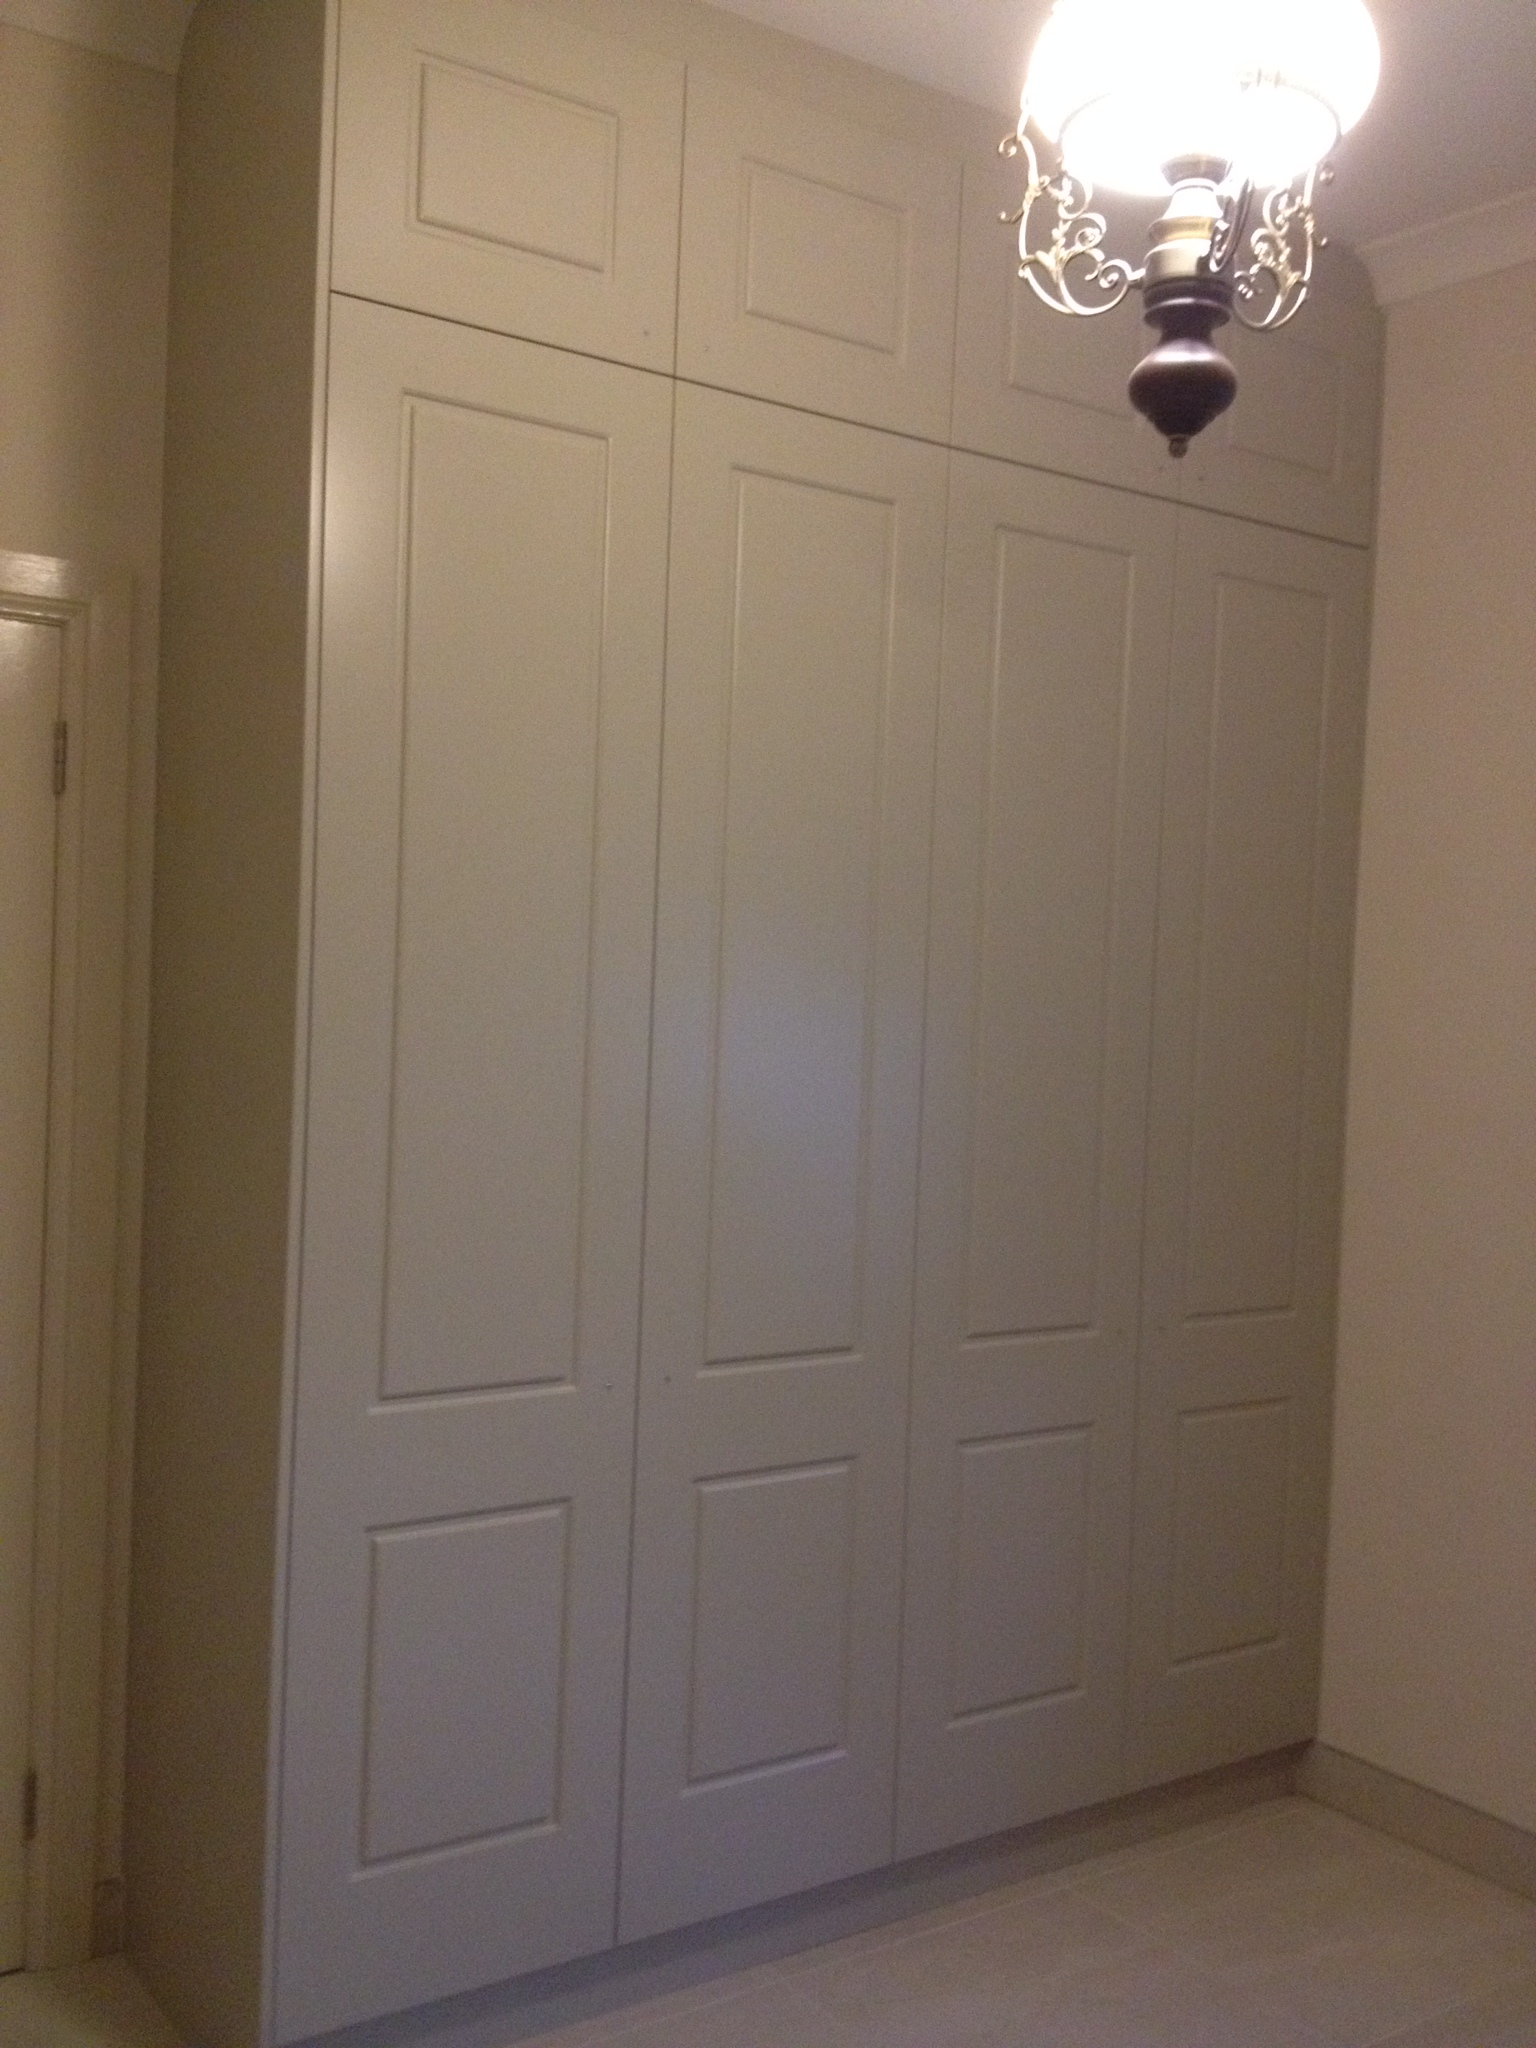 push to open hinged doors with pattern.JPG